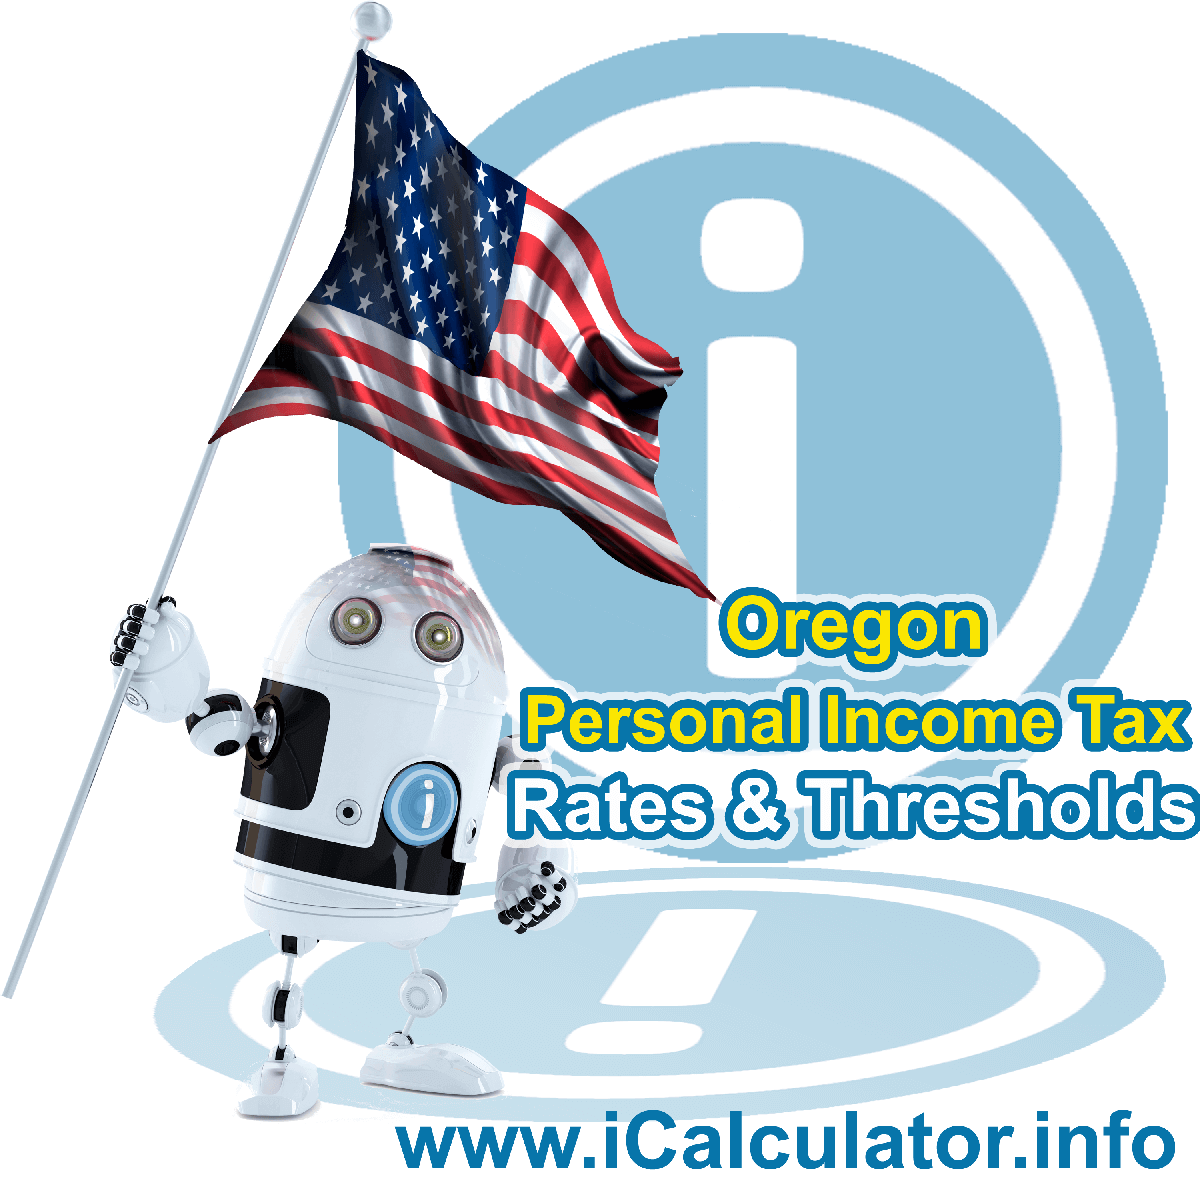 Oregon State Tax Tables 2020. This image displays details of the Oregon State Tax Tables for the 2020 tax return year which is provided in support of the 2020 US Tax Calculator